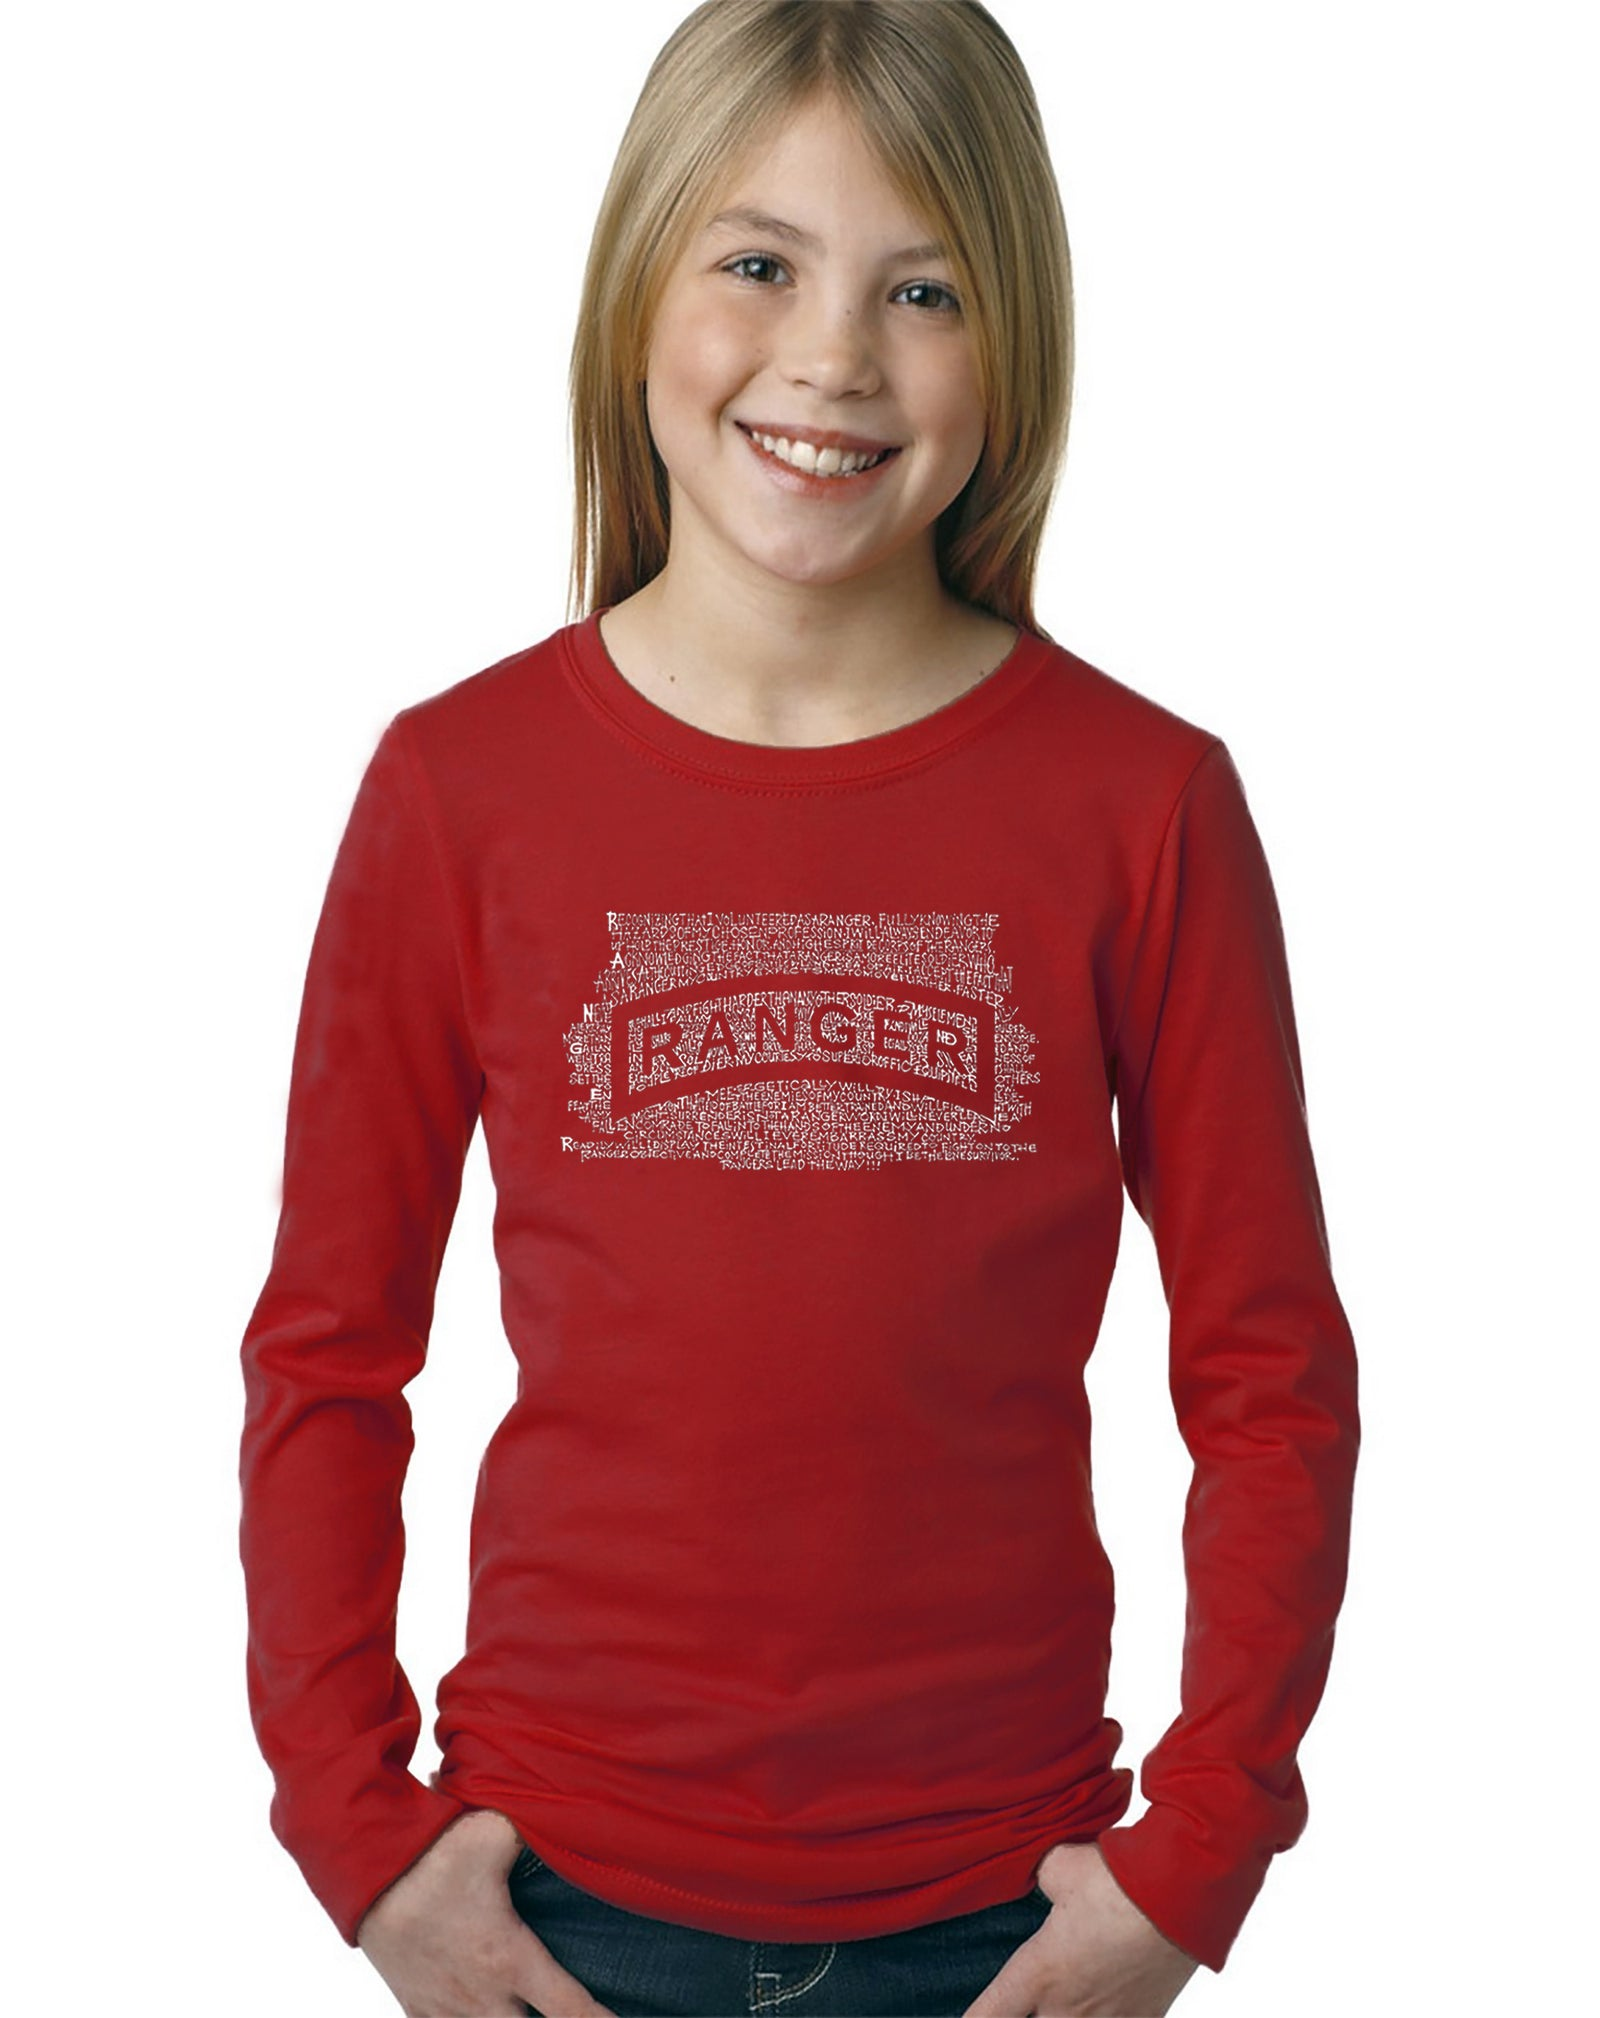 Girl's Long Sleeve - The US Ranger Creed